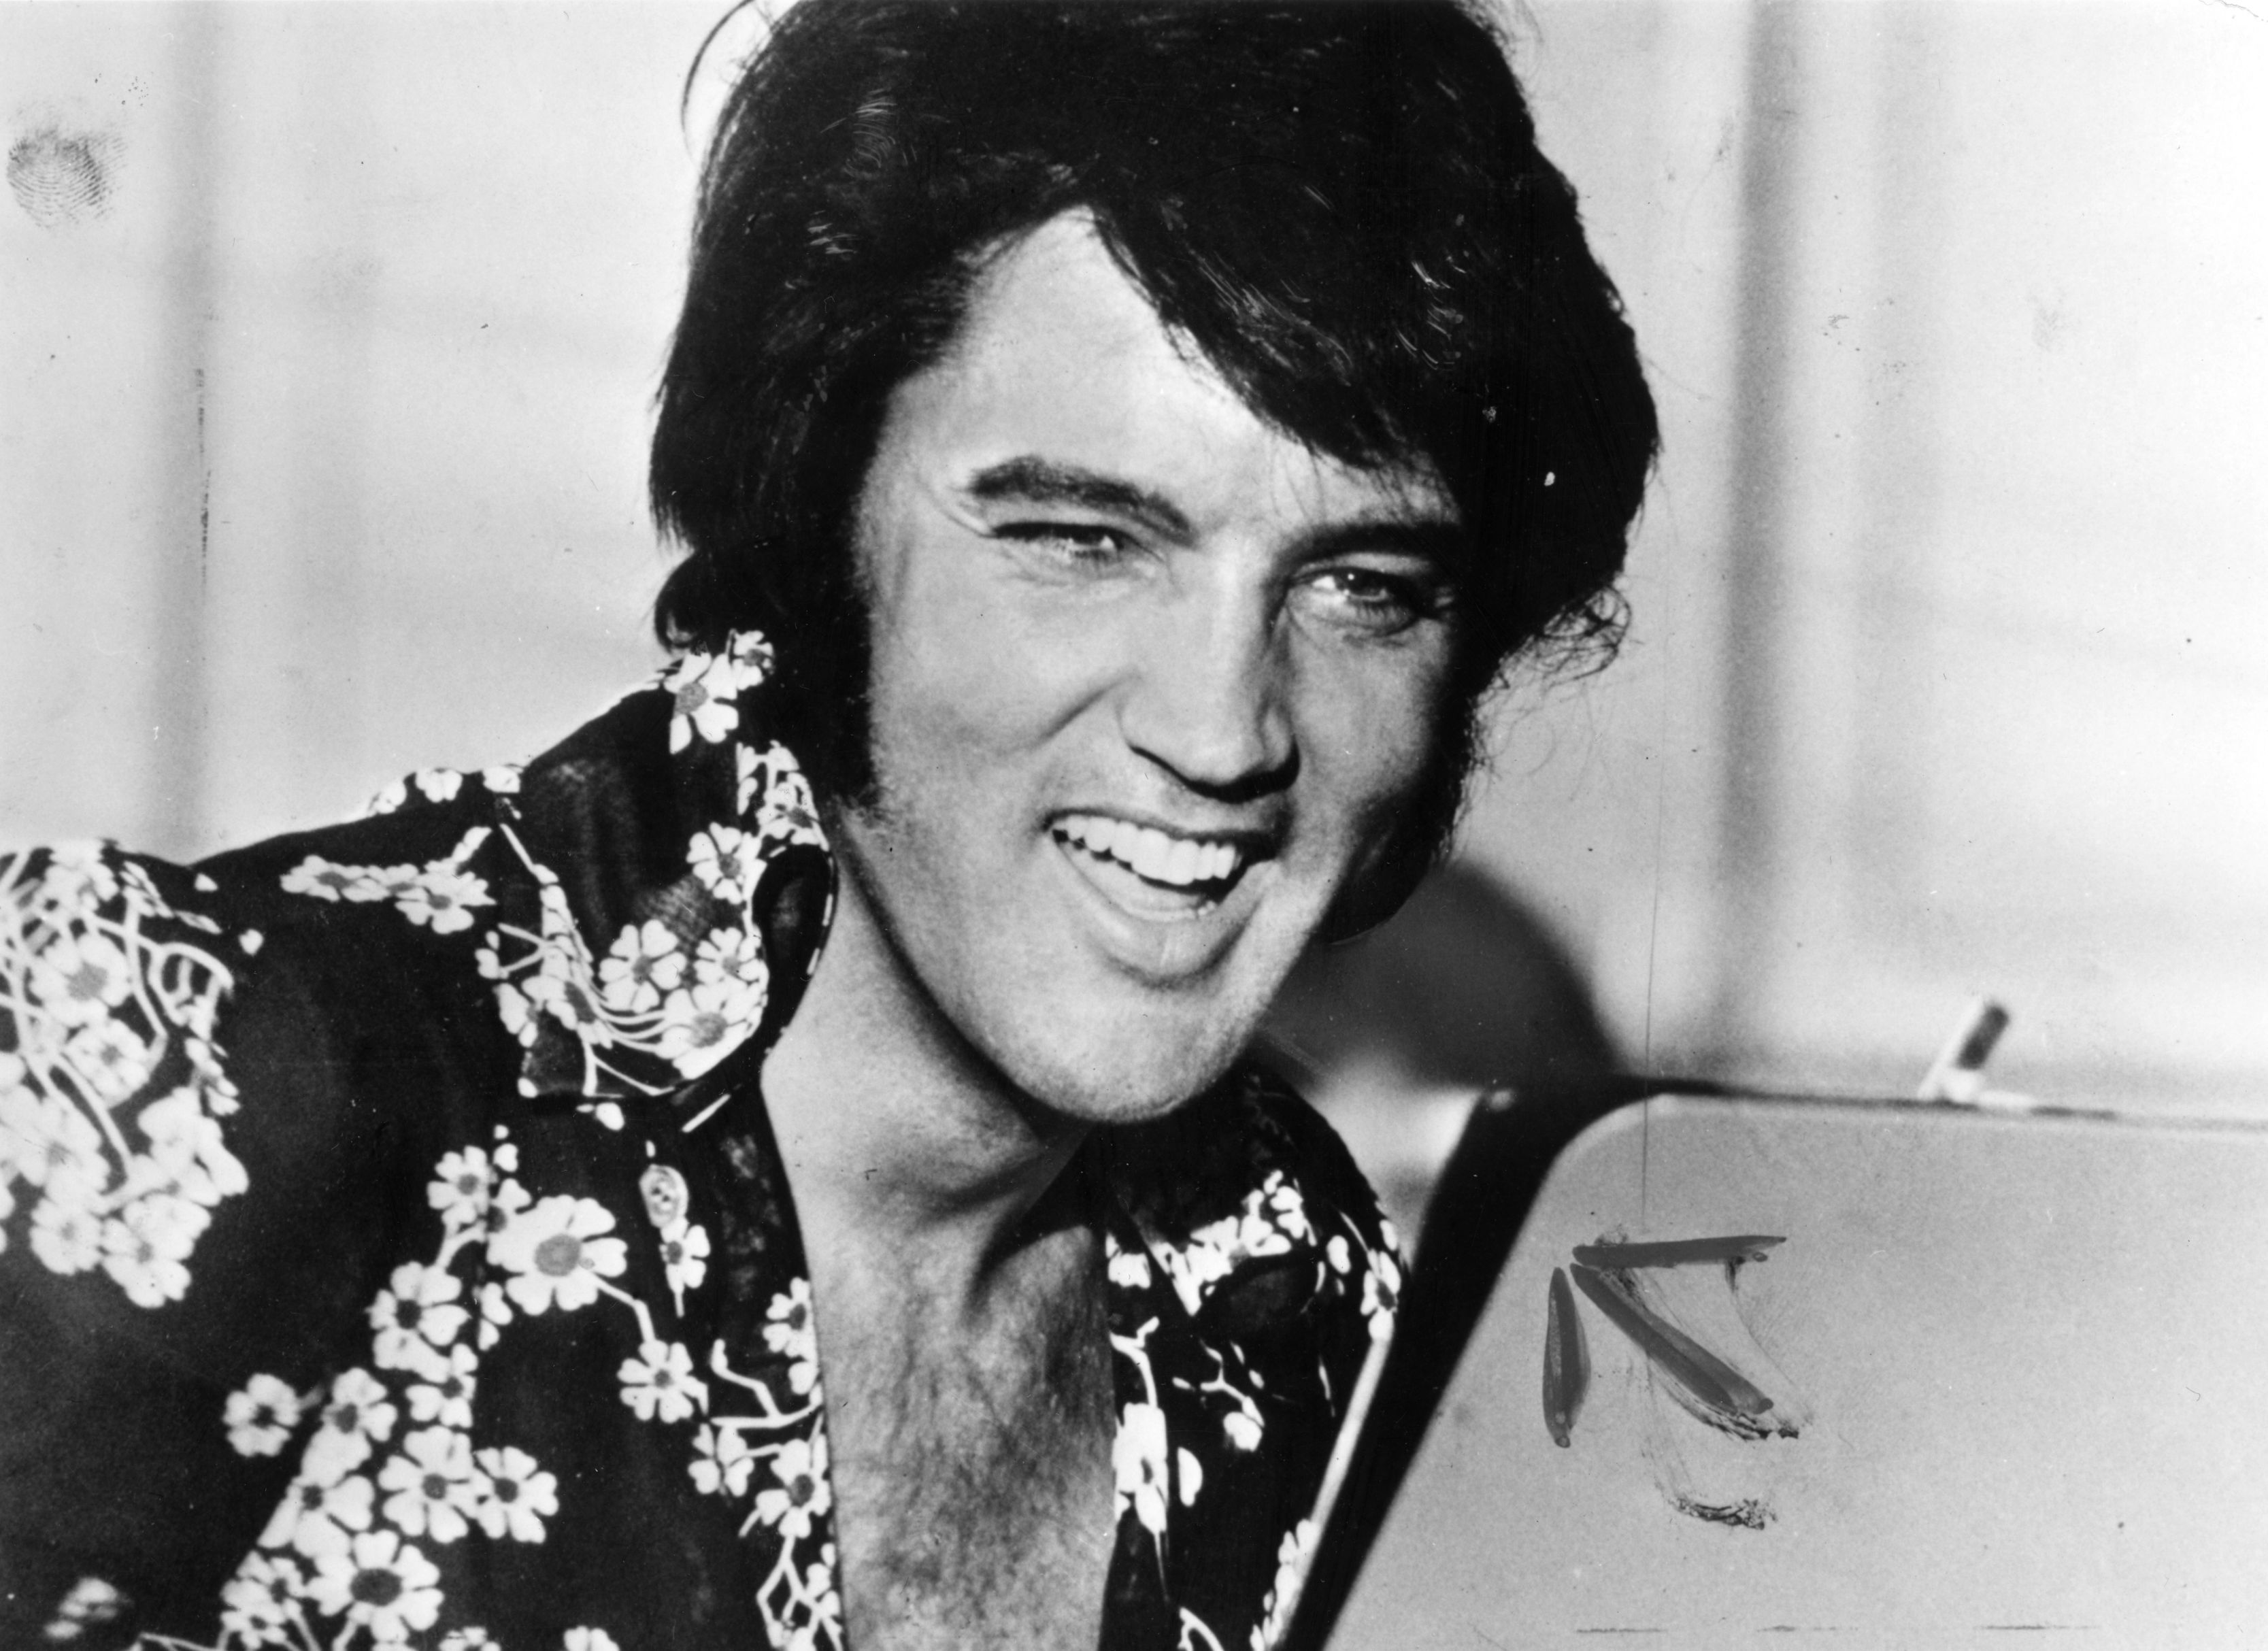 Elvis laughing circa 1975 | Photo: Getty Images